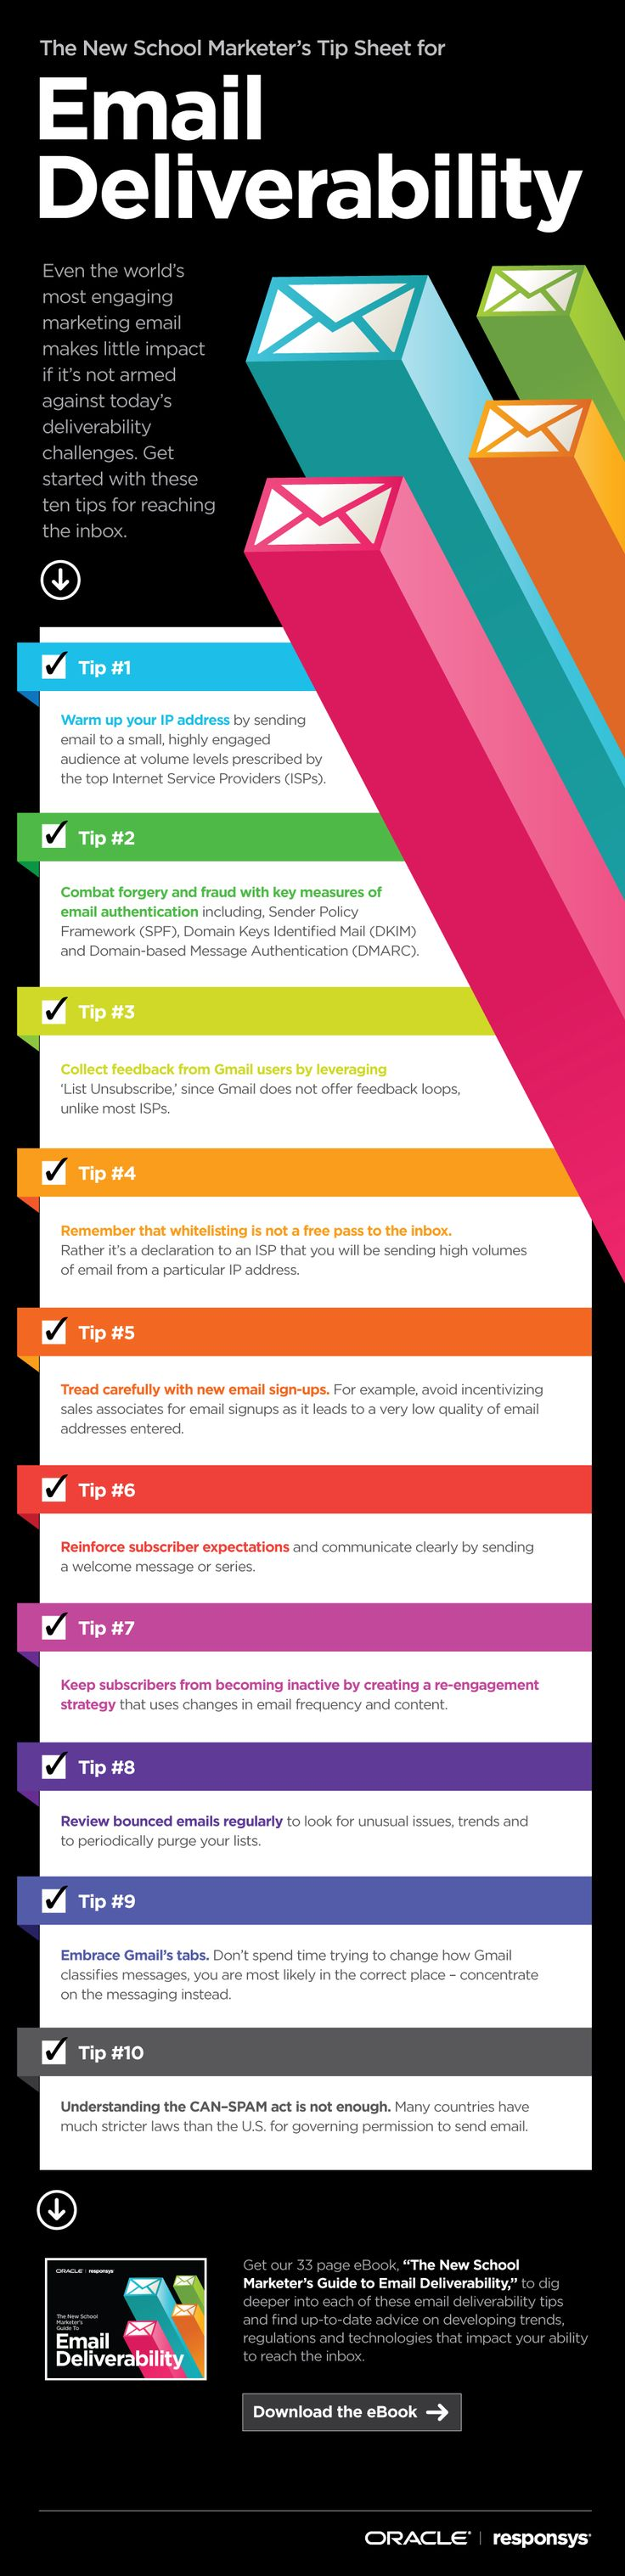 Top 10 Tips for #Email Deliverability visit our website on our email marketing service packages and sign up for our mail list www.rnc-consulting.com